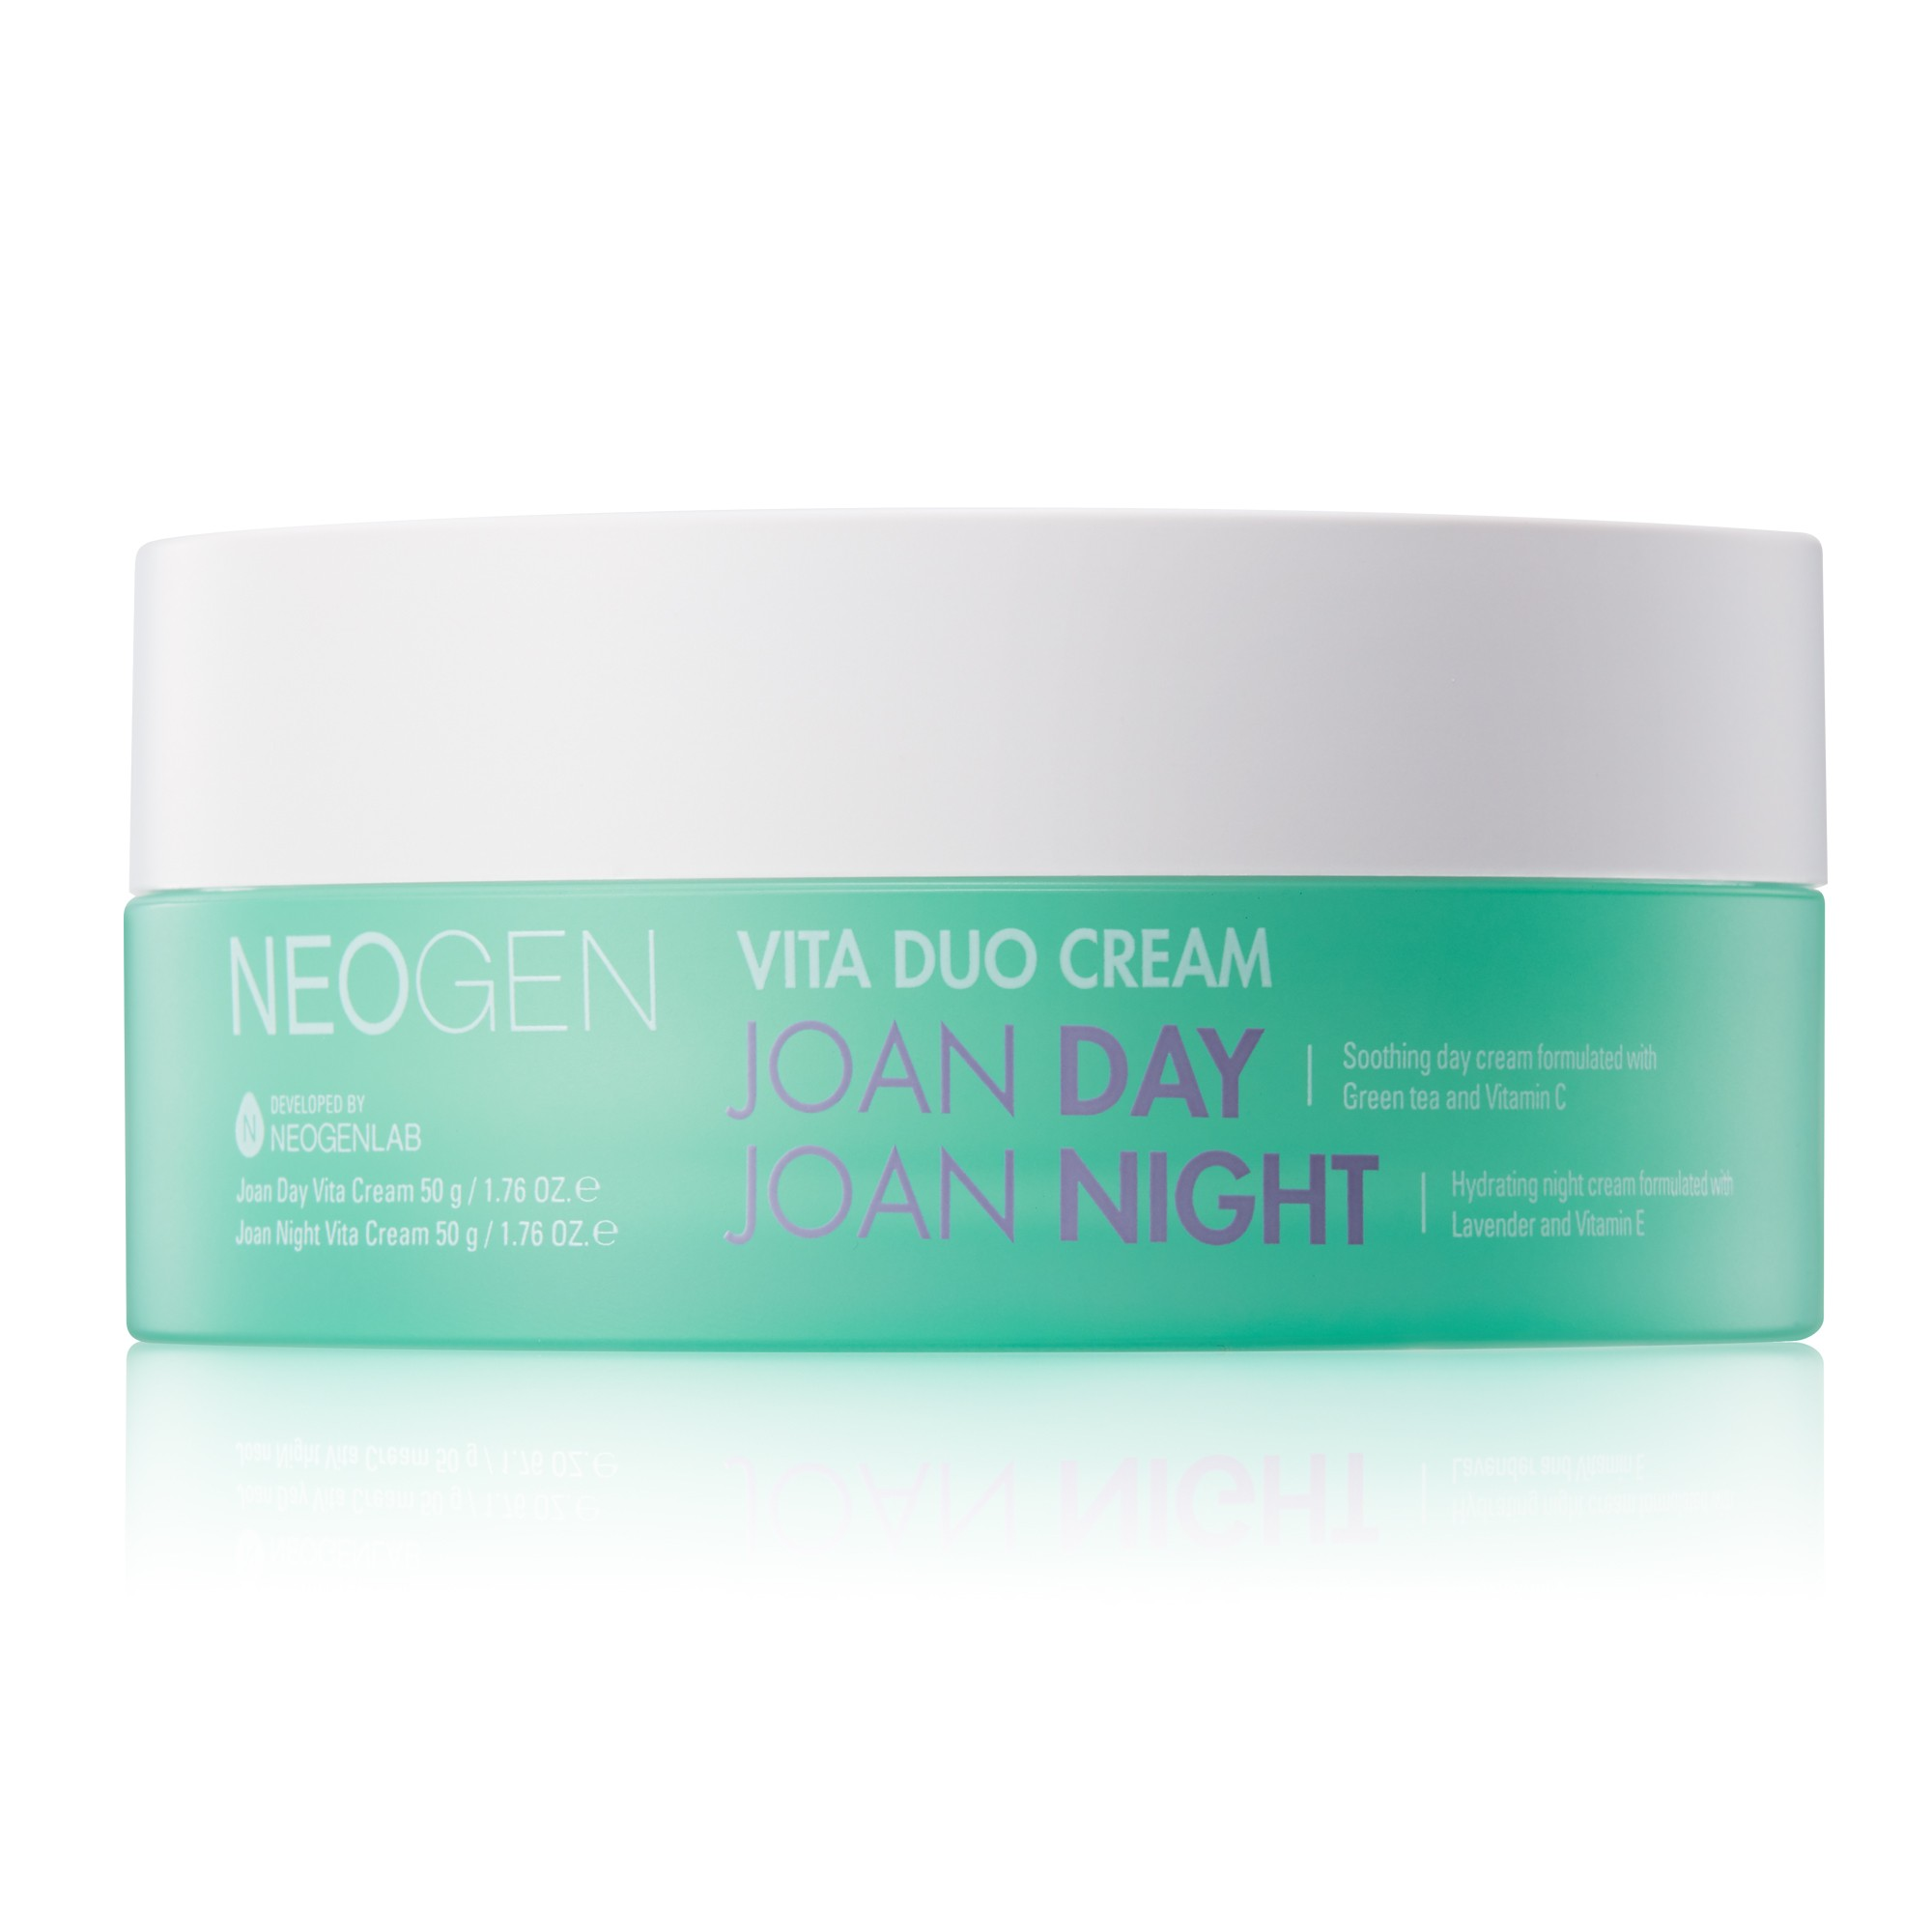 neogen-vita-duo-joan-day-joan-night-cream 2